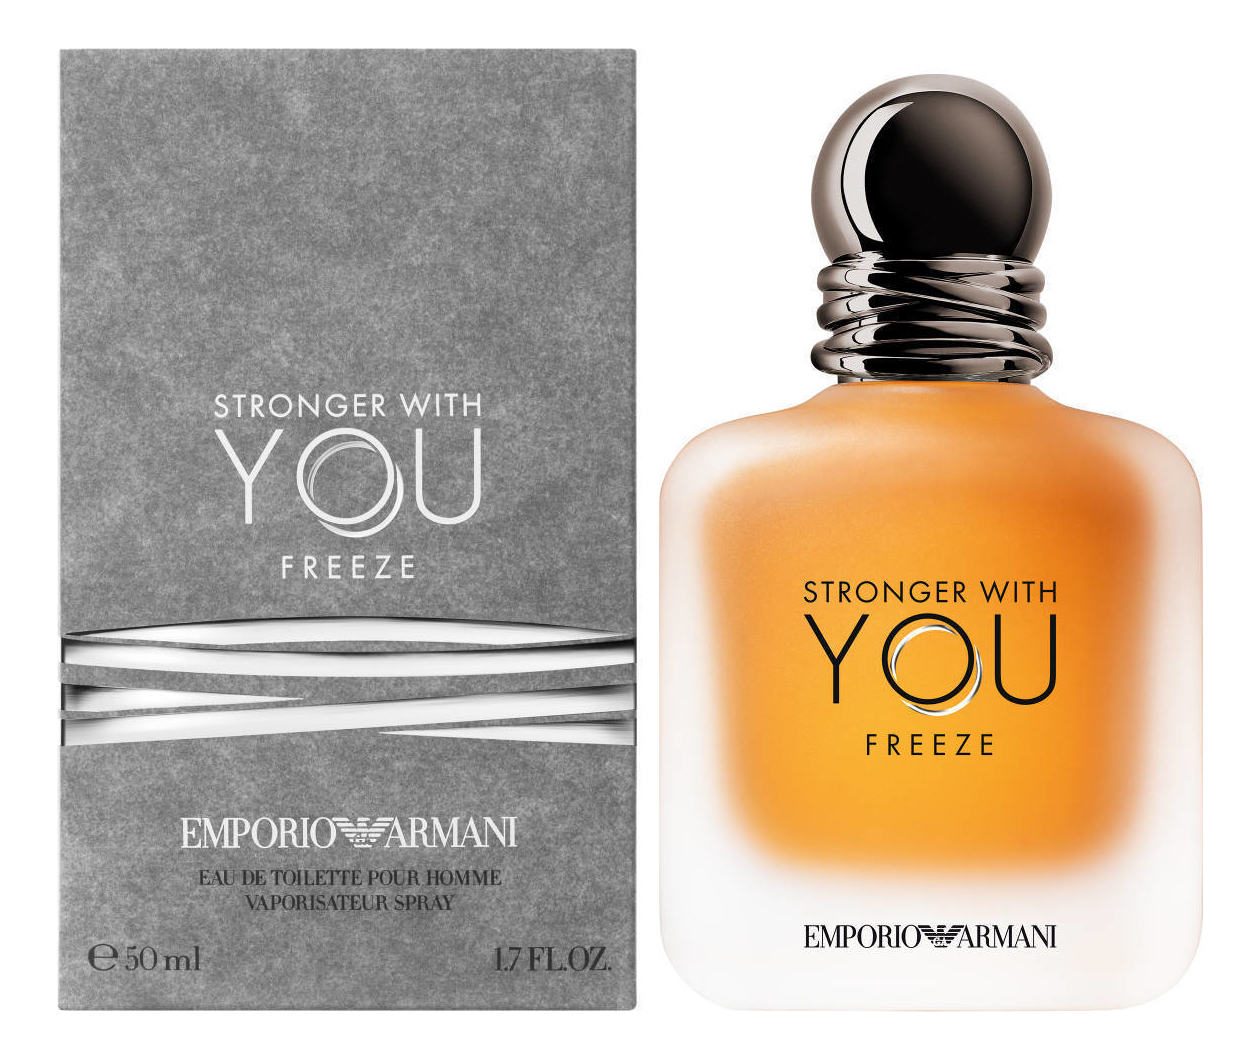 Фото - Emporio Stronger With You Freeze: туалетная вода 50мл парфюмерная вода giorgio armani stronger with you intensely 50 мл